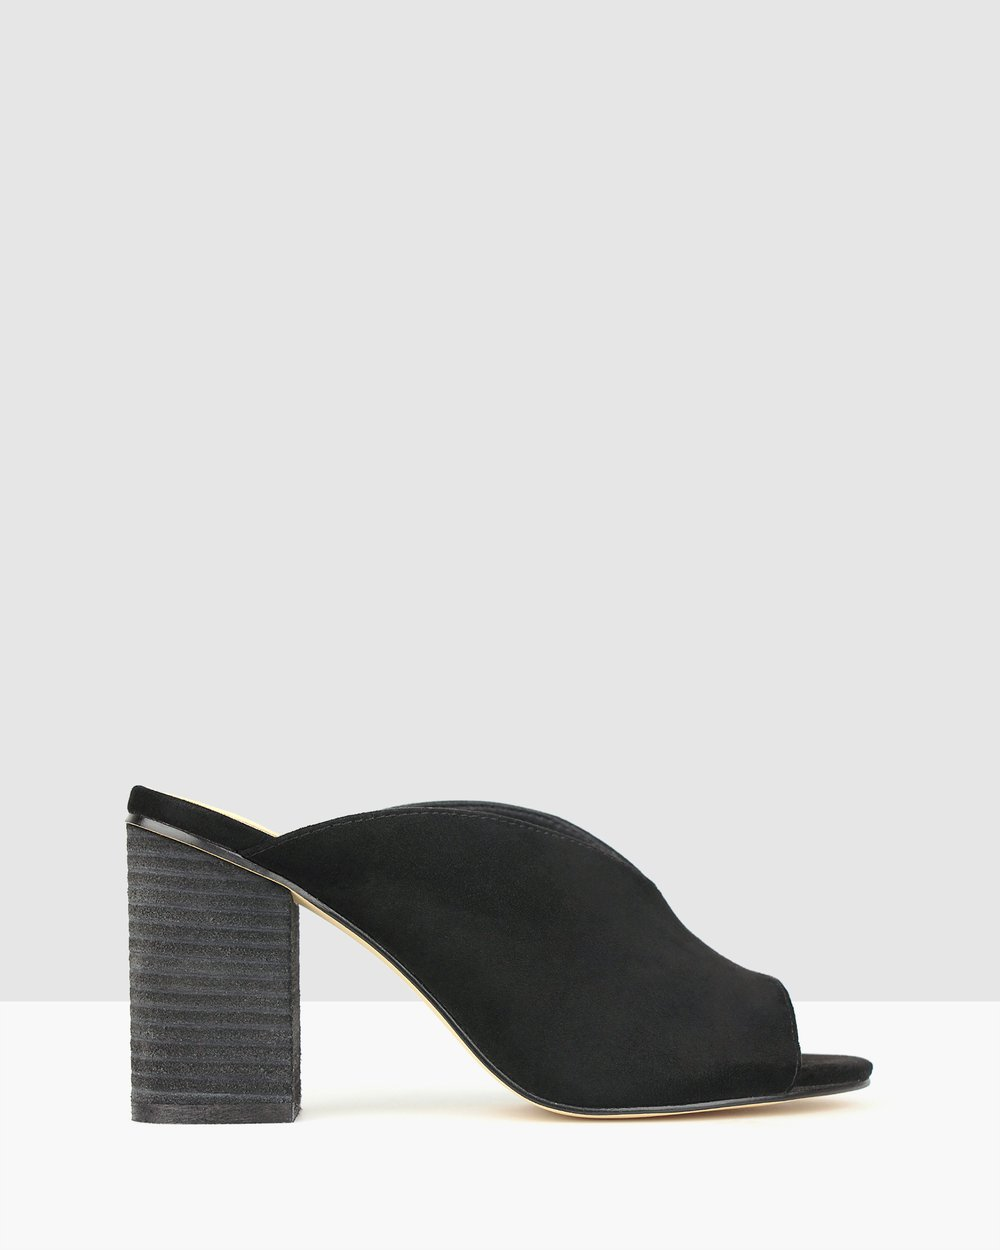 7152bc68b0b Lunar Block Heel Mules by Betts Online